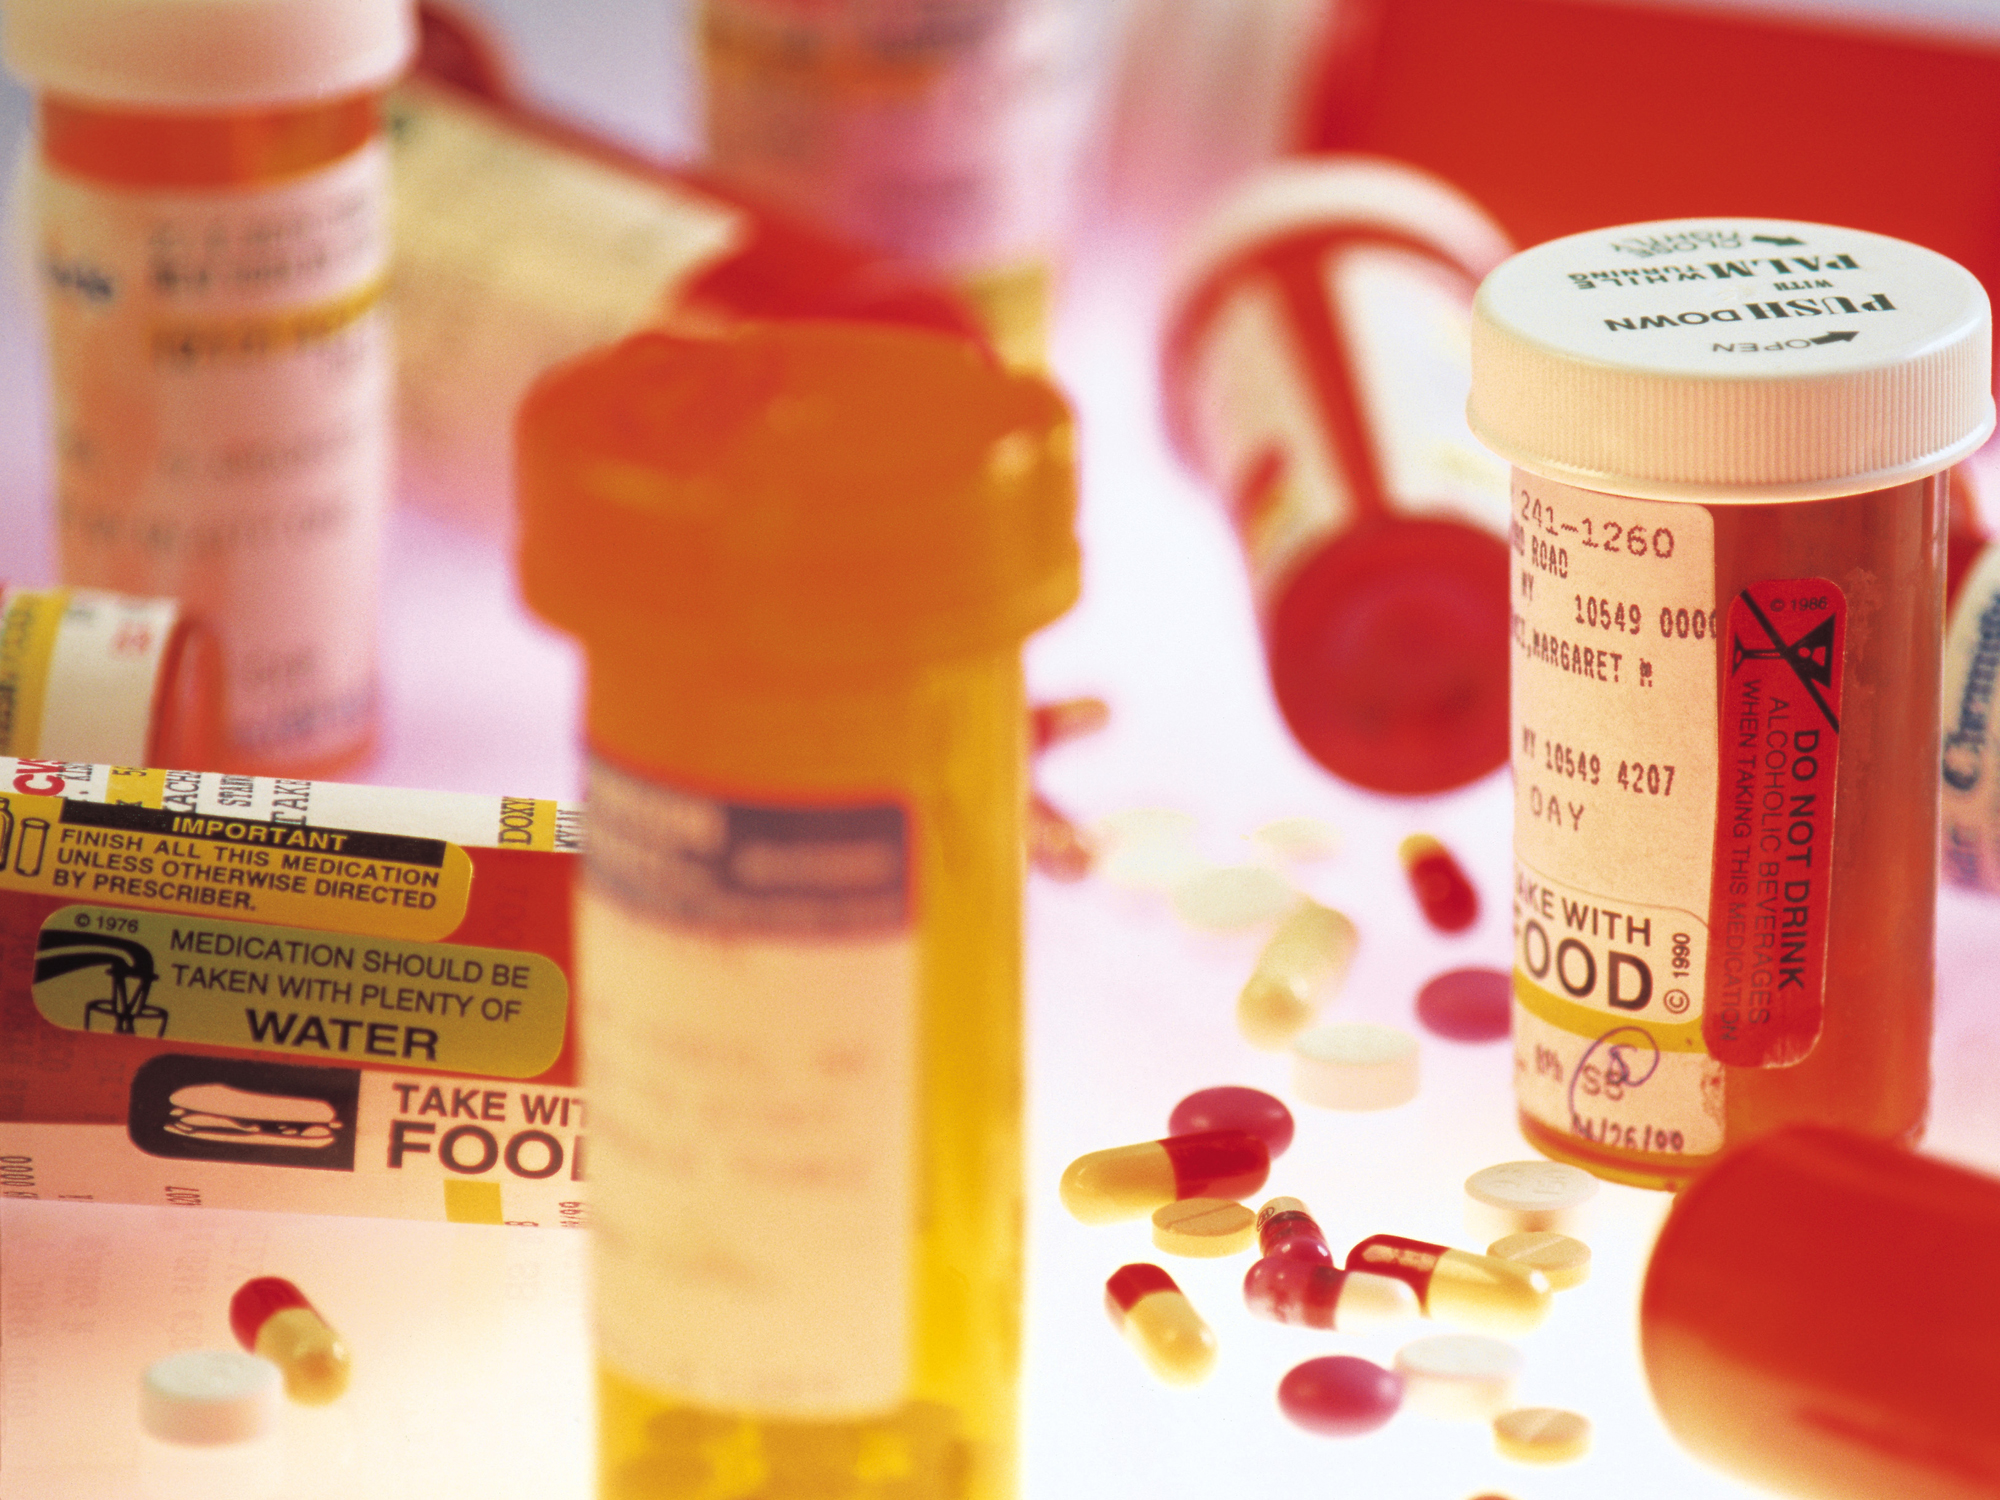 Are you taking an 'approved' drug that could kill you?